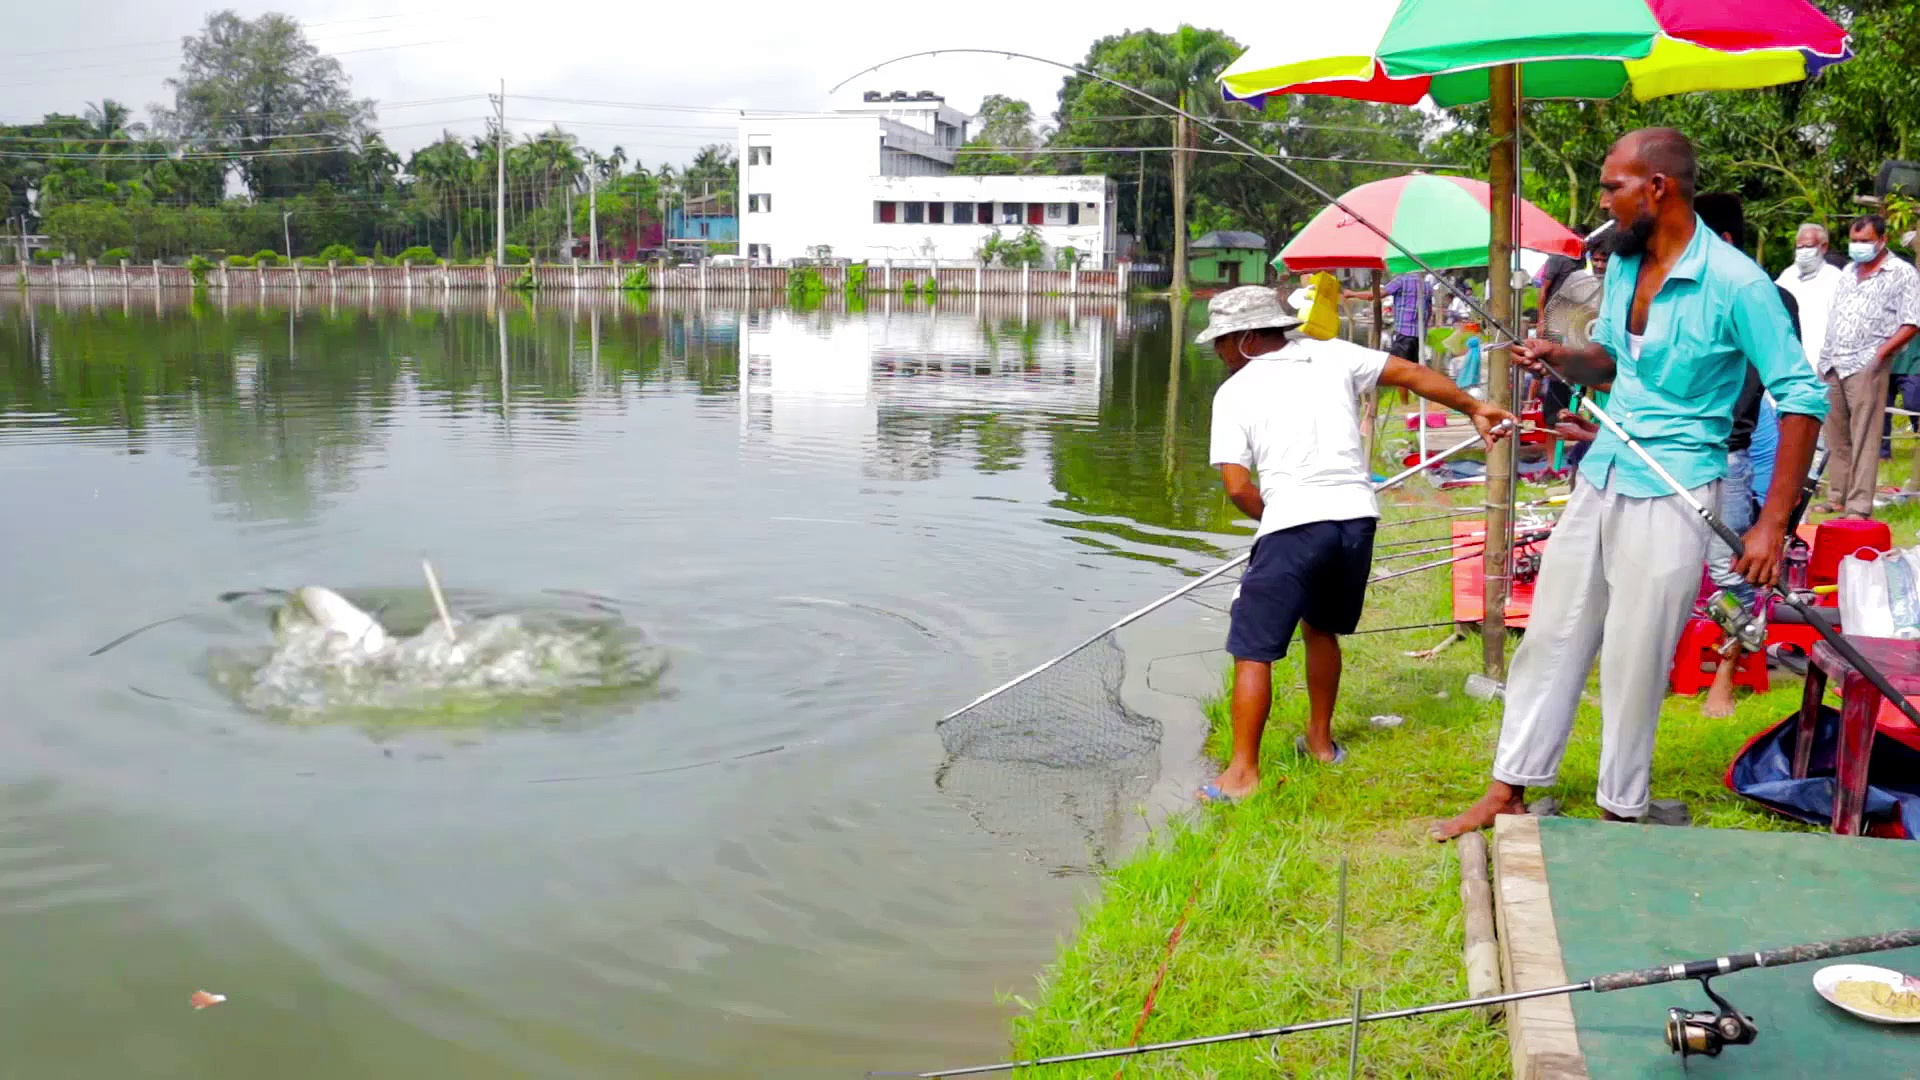 Amazing Fish Hunting | Monster Amazing Fish Catching by Fishing Rod in Village Pond